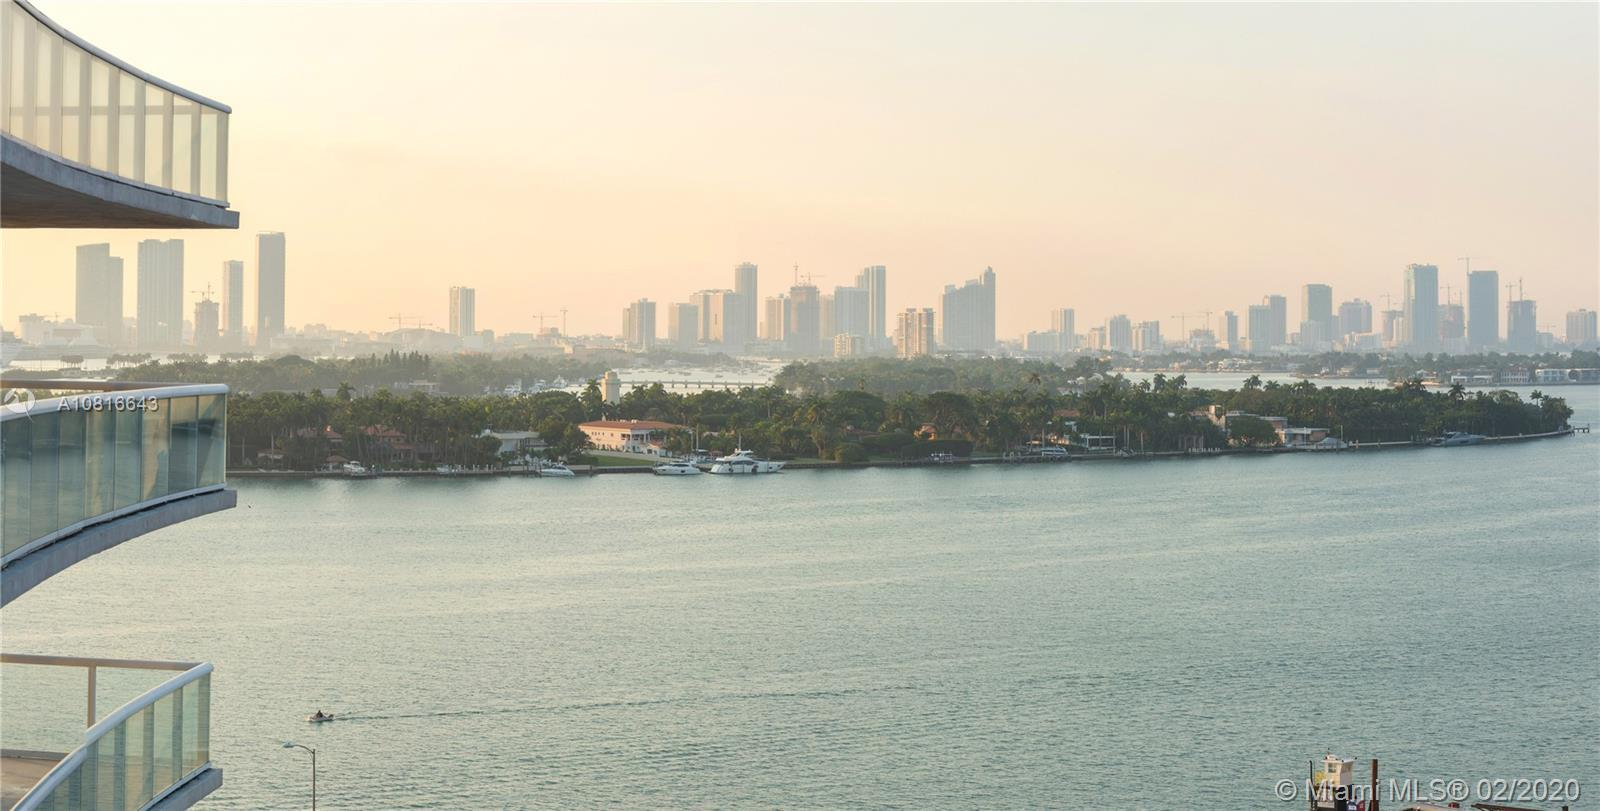 Best priced 2 bedroom at ICON South Beach presented by Philippe Starck. Immaculately kept 2 bedroom